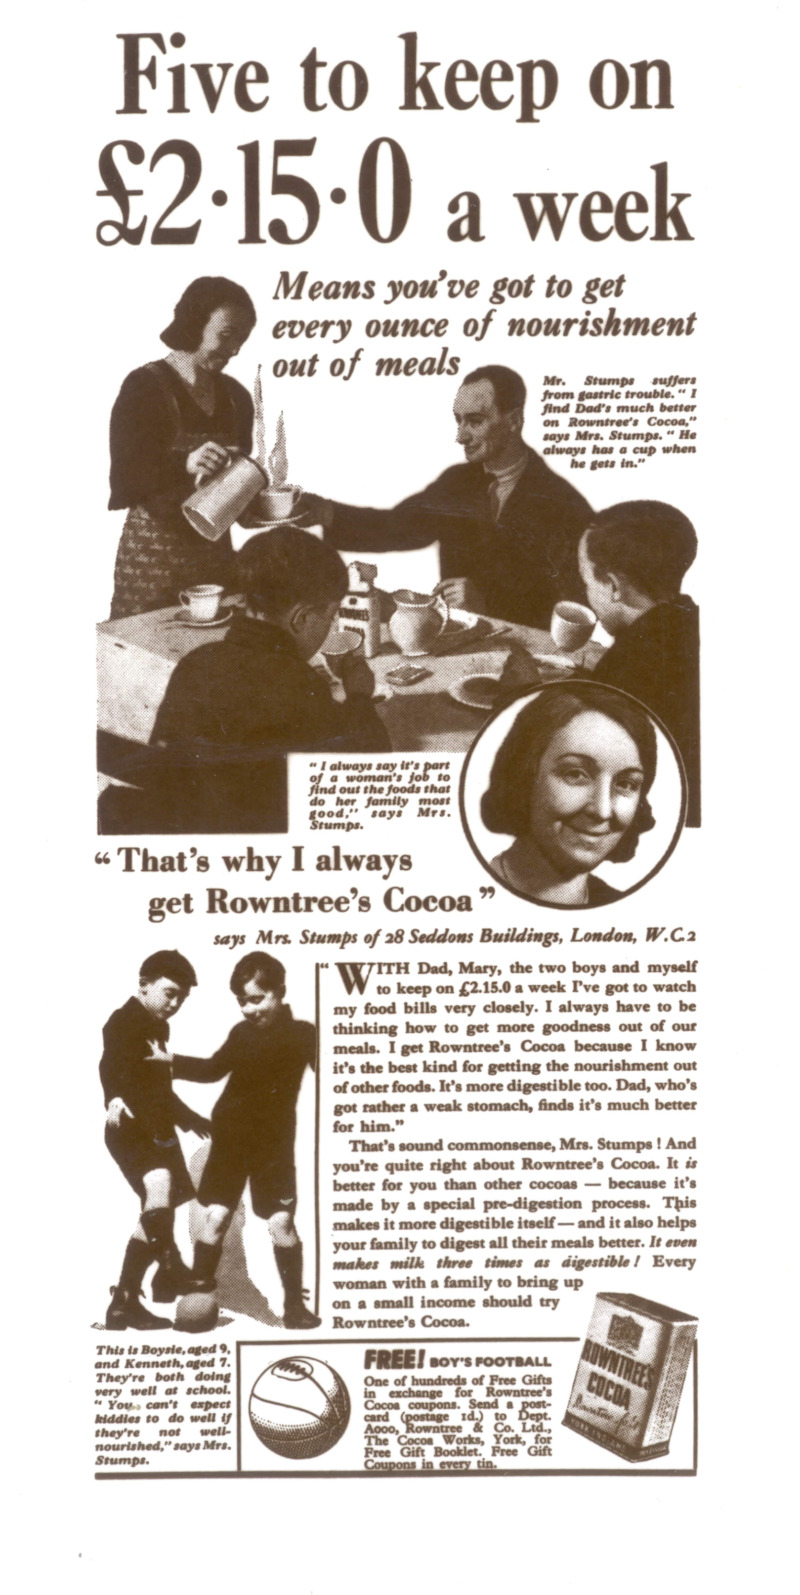 Image: Cocoa 'Five to keep' 1936